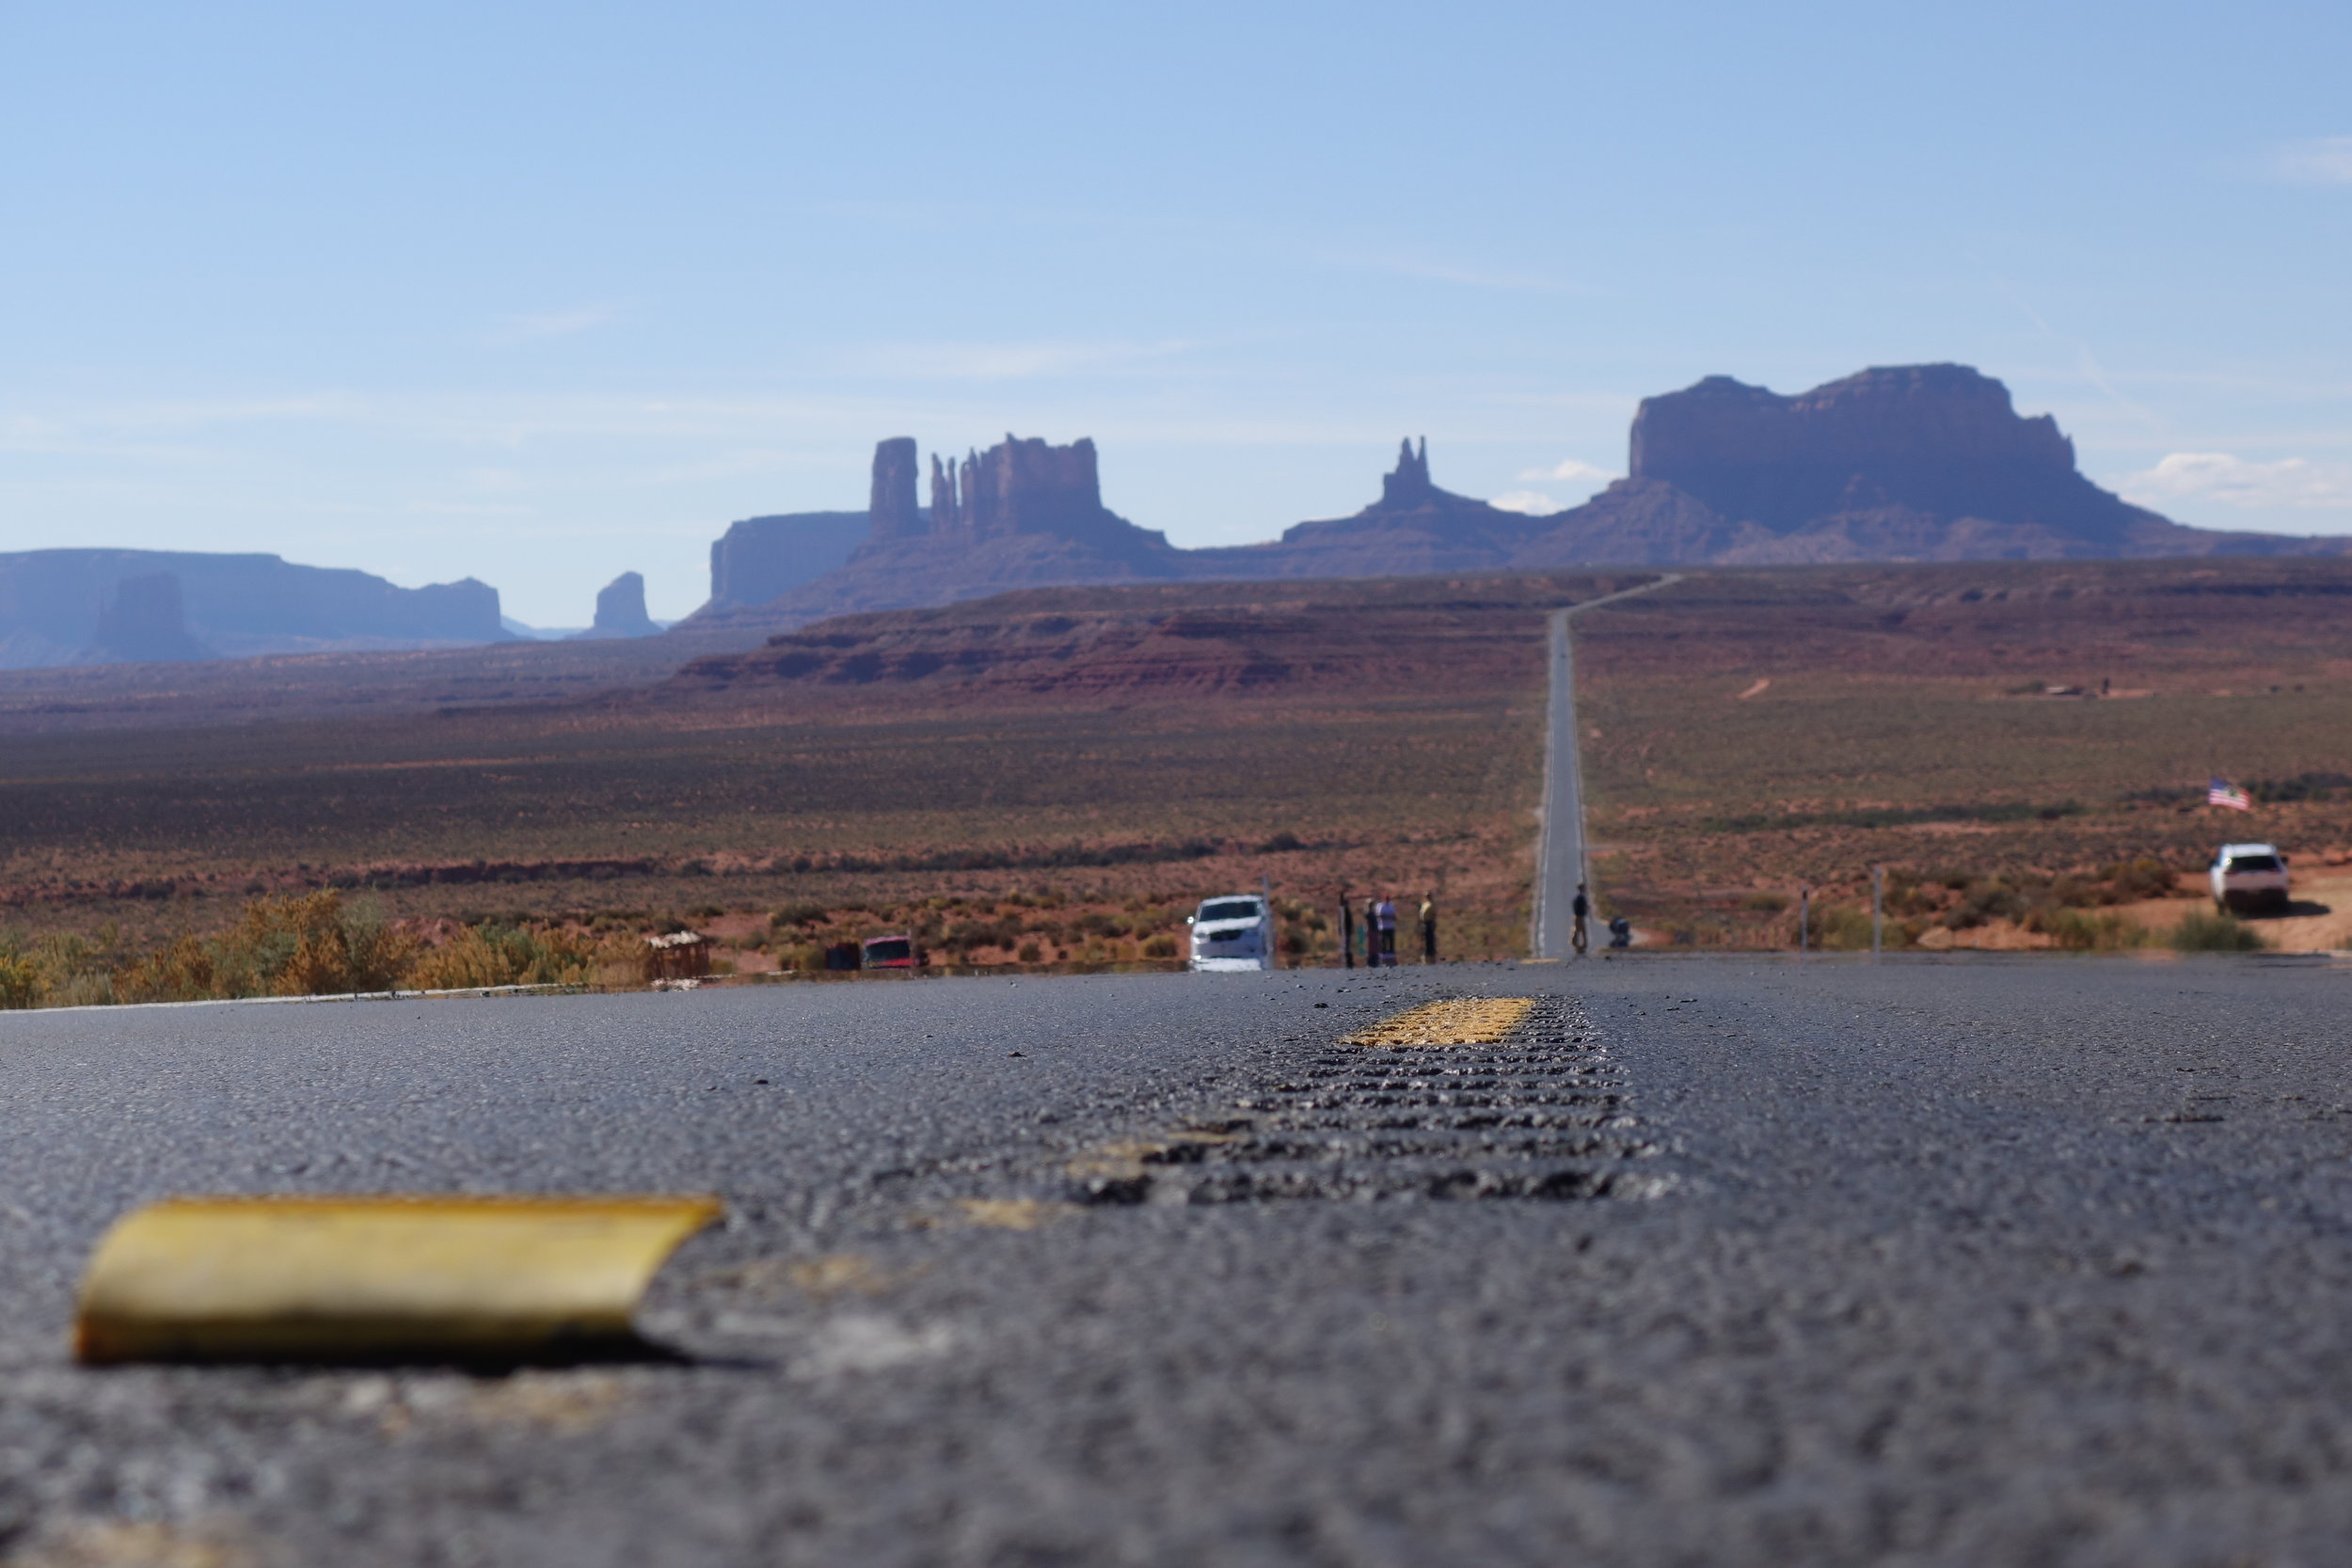 One of the most famous silhouettes in the world. Monument Valley.